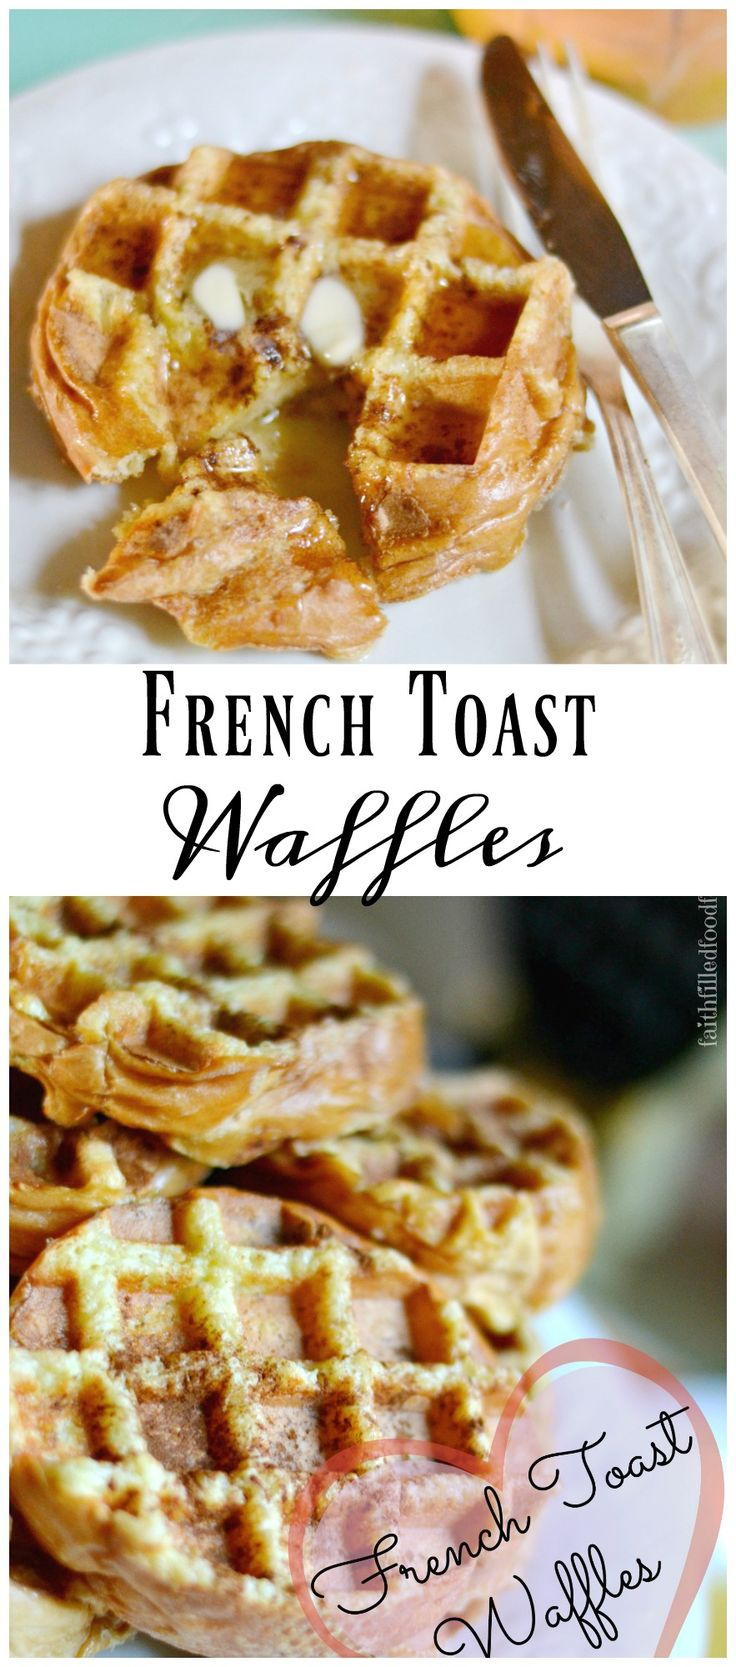 French Toast Waffles ~ A combination between waffles and french toast and it is soo delish! Great breakfast or dinner and can be frozen for later too so saves you money on those days when you don't know what to cook!